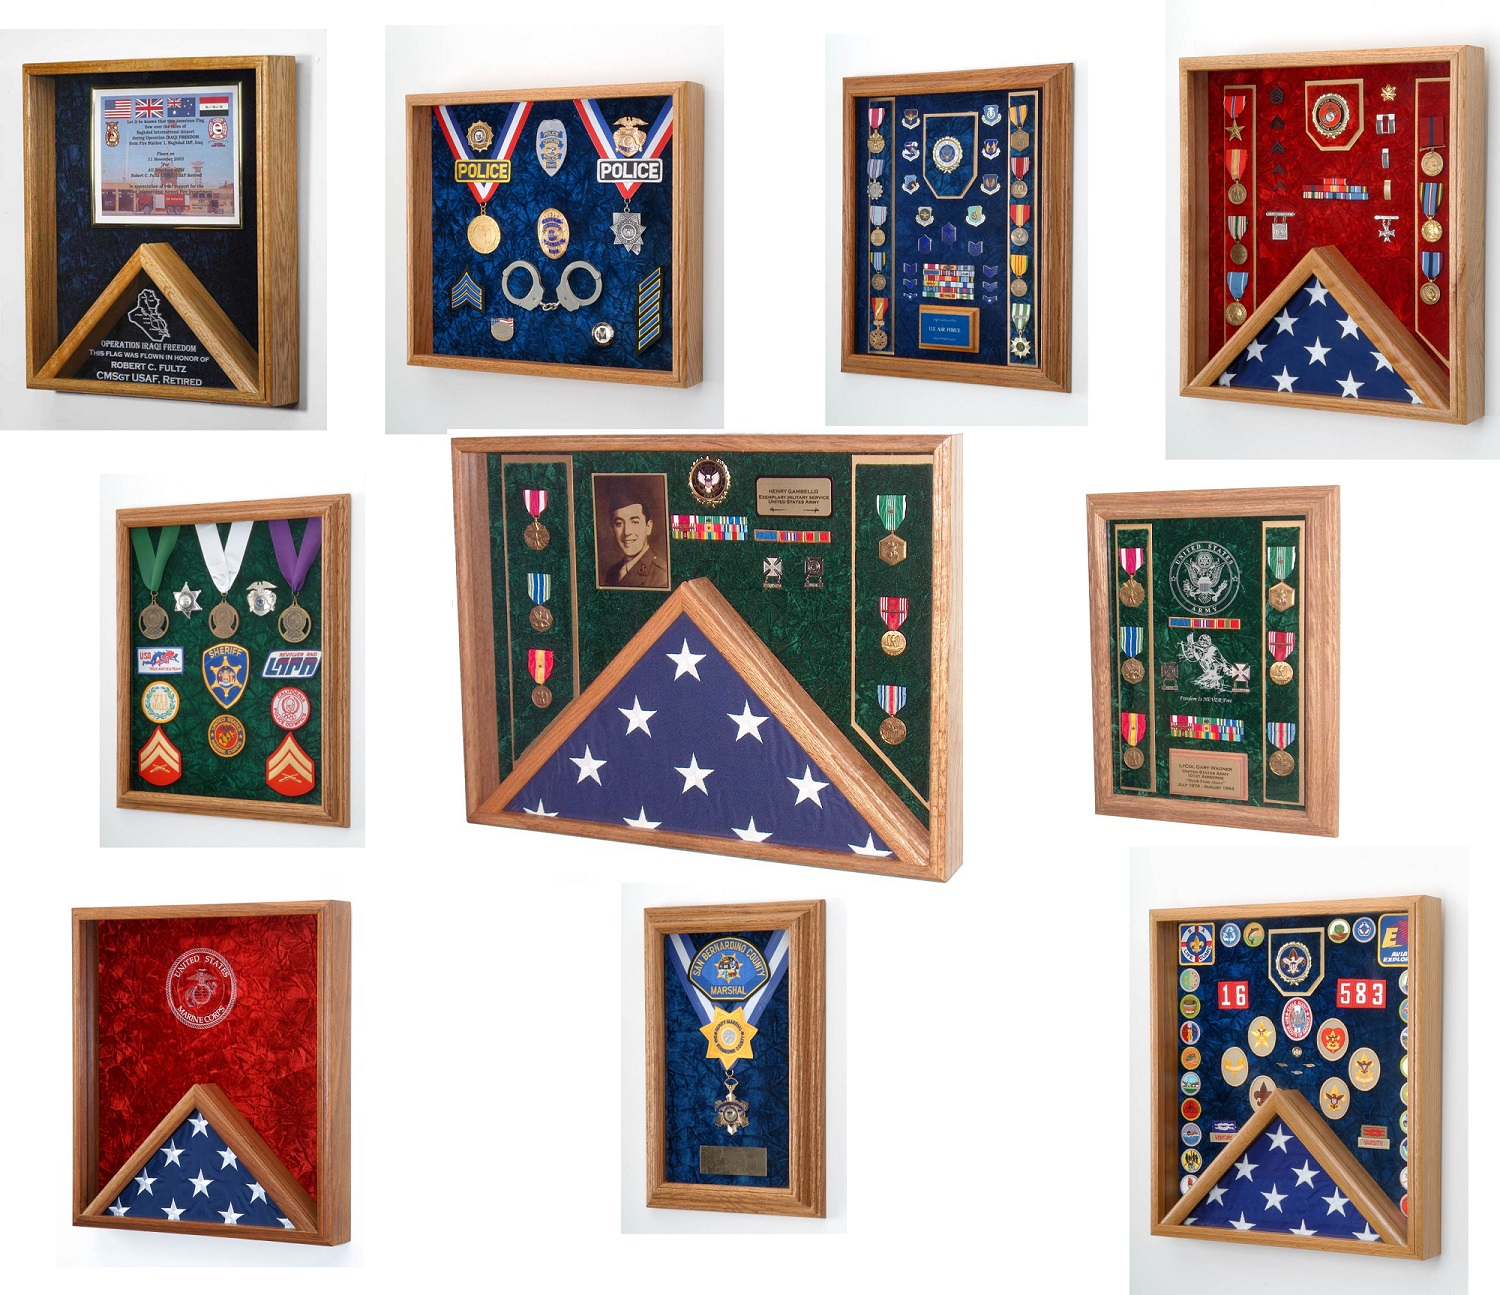 Military Medals Shadow Boxes, Law Enforcement & Firefighter Display Cases Product Samples